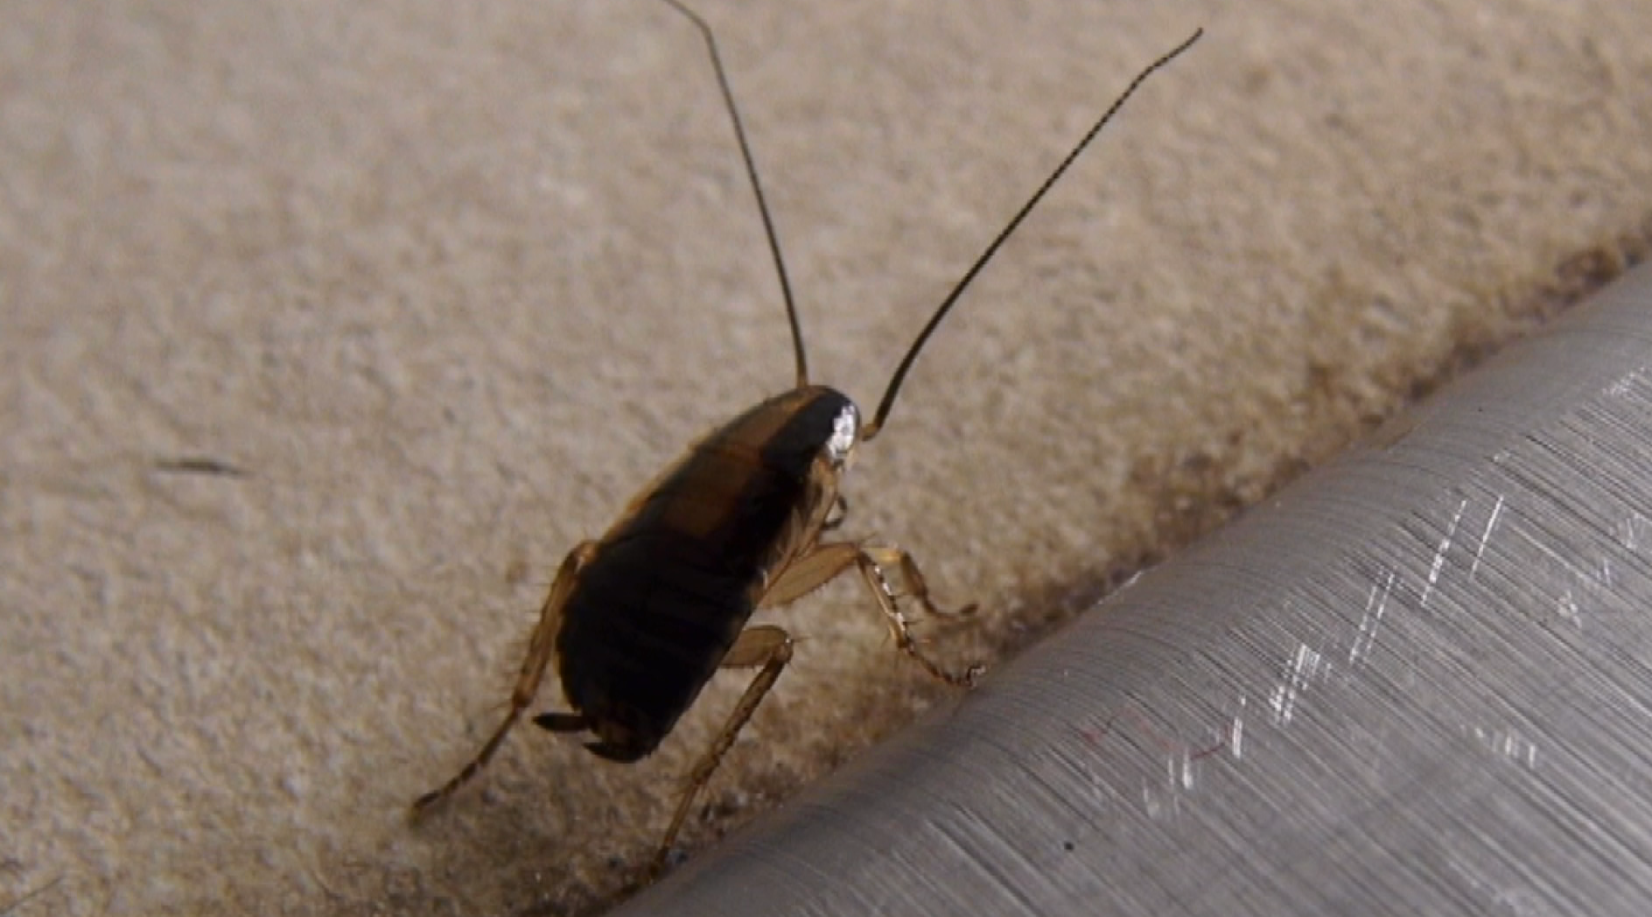 Apartment Building Has Roaches minneapolis housing complex infested with cockroaches | kare11